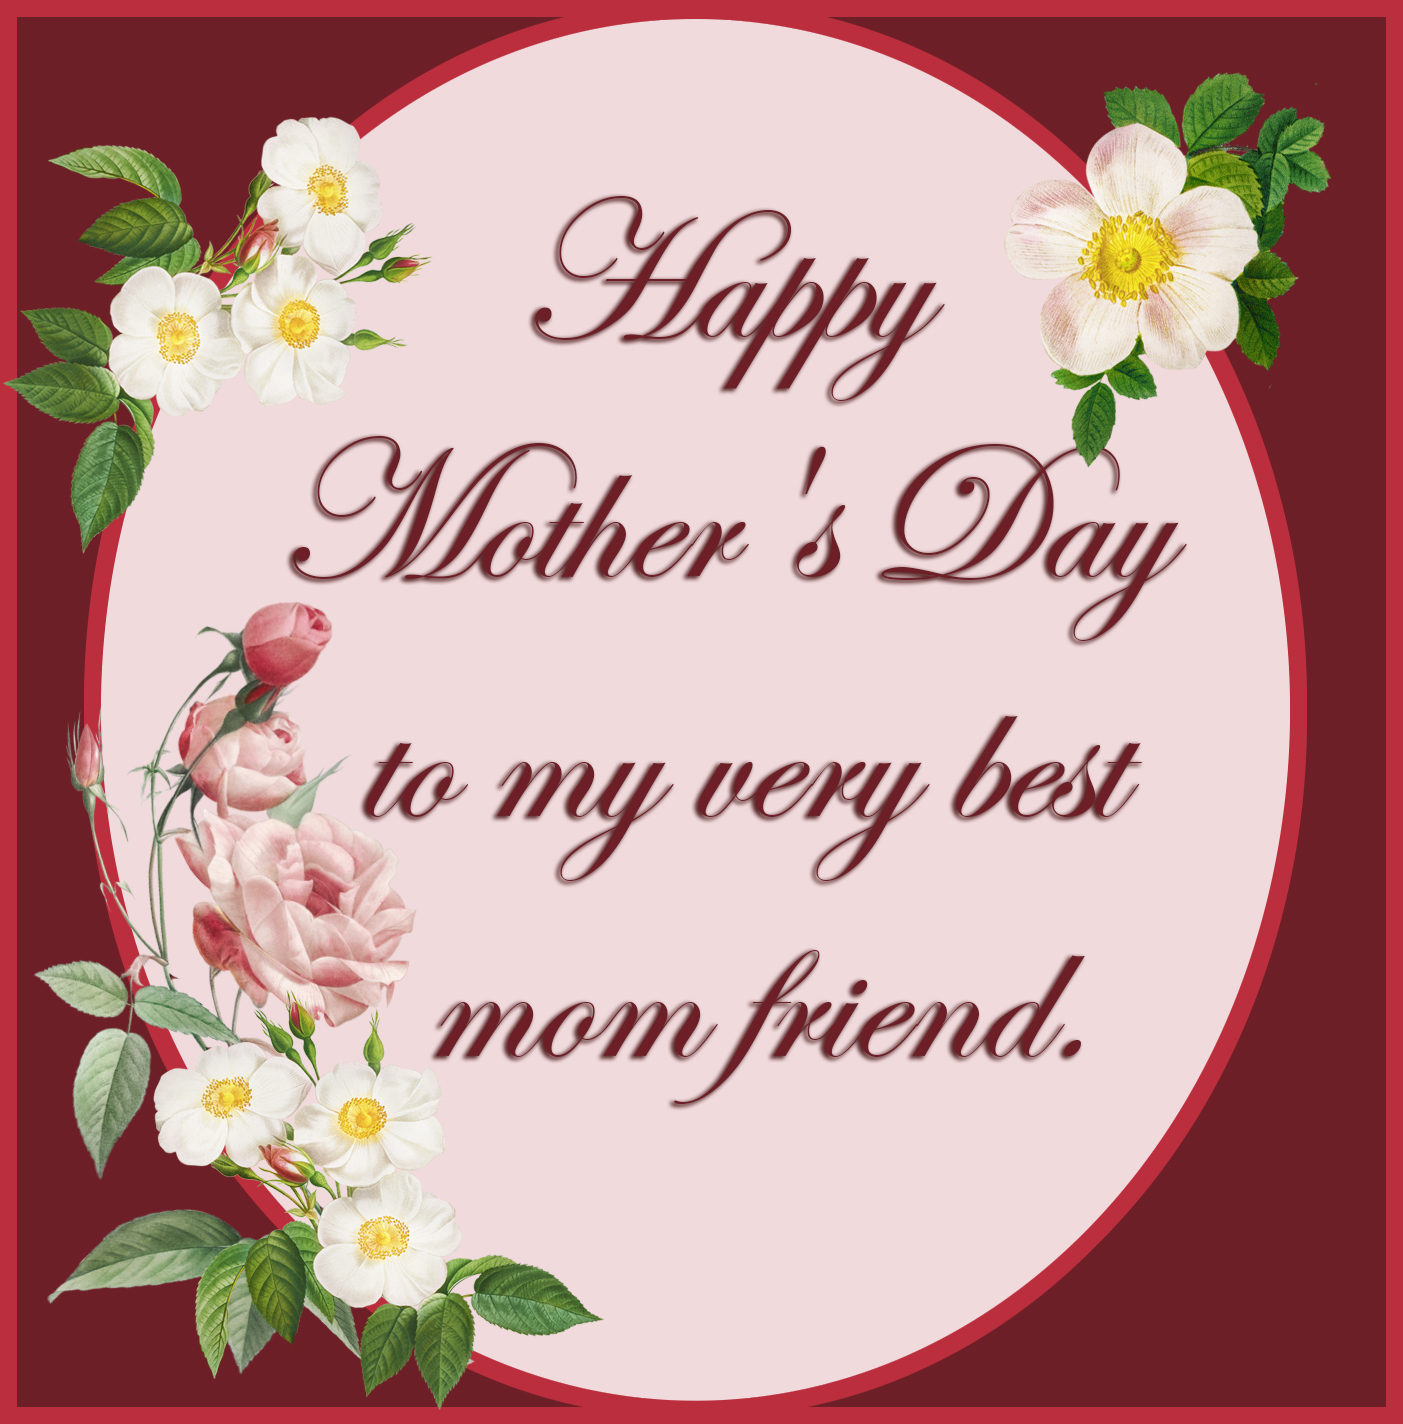 very best mom friend greeting Mother's day